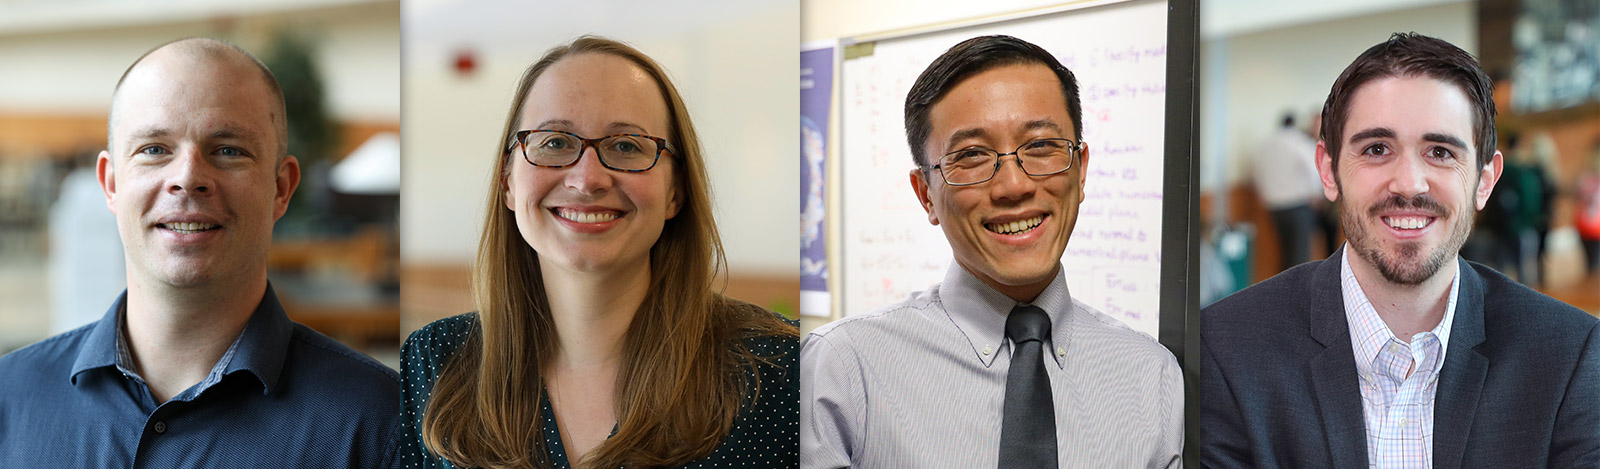 2020 NSF CAREER Grant Winners - Kenny Befus, Alyssia Gallagher, Stanley Ling and Michael Scullin